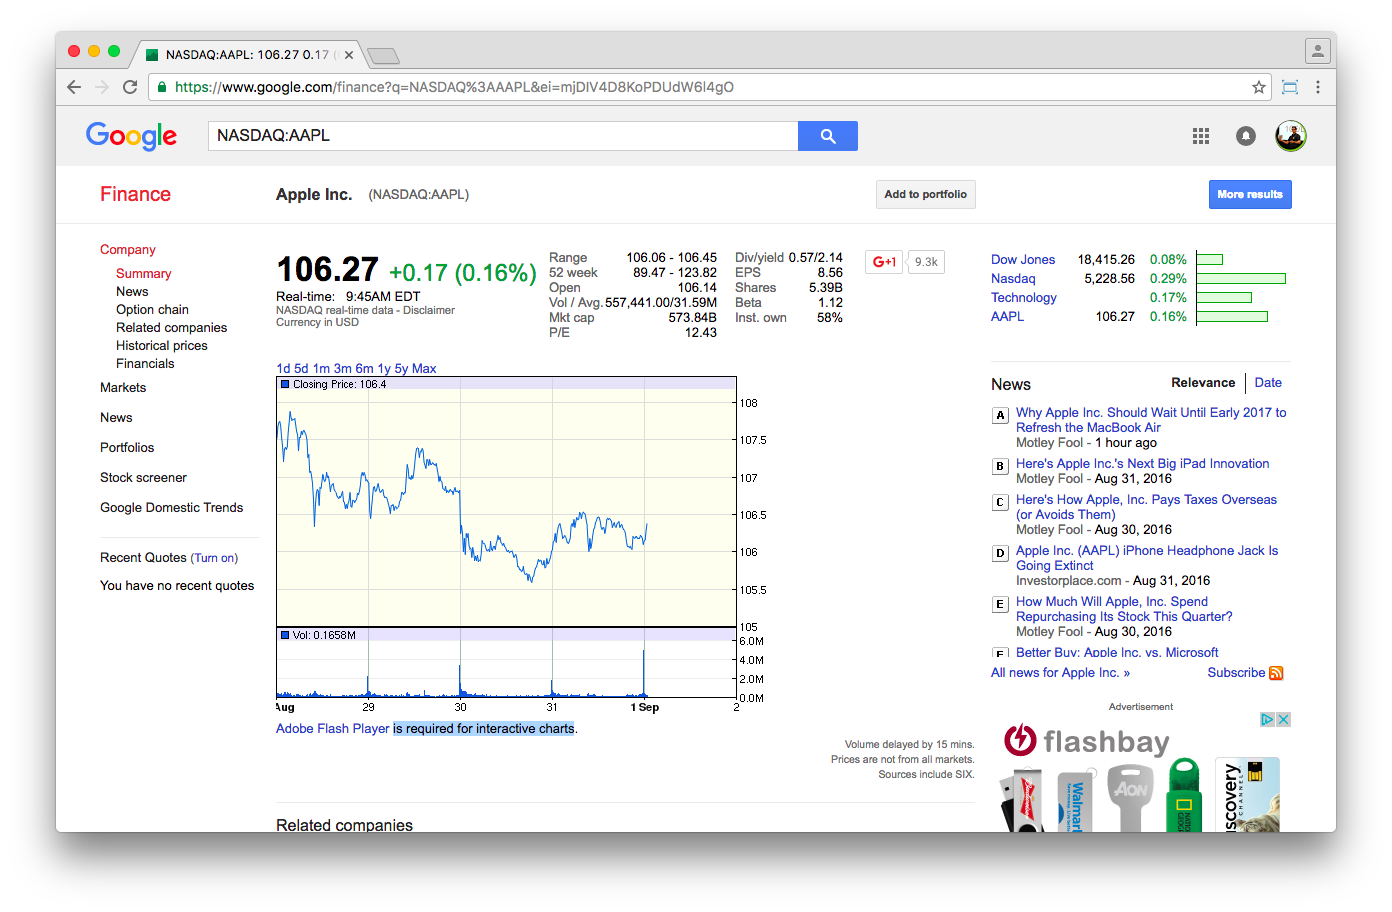 Static charts are shown on Google Finance without Flash Player